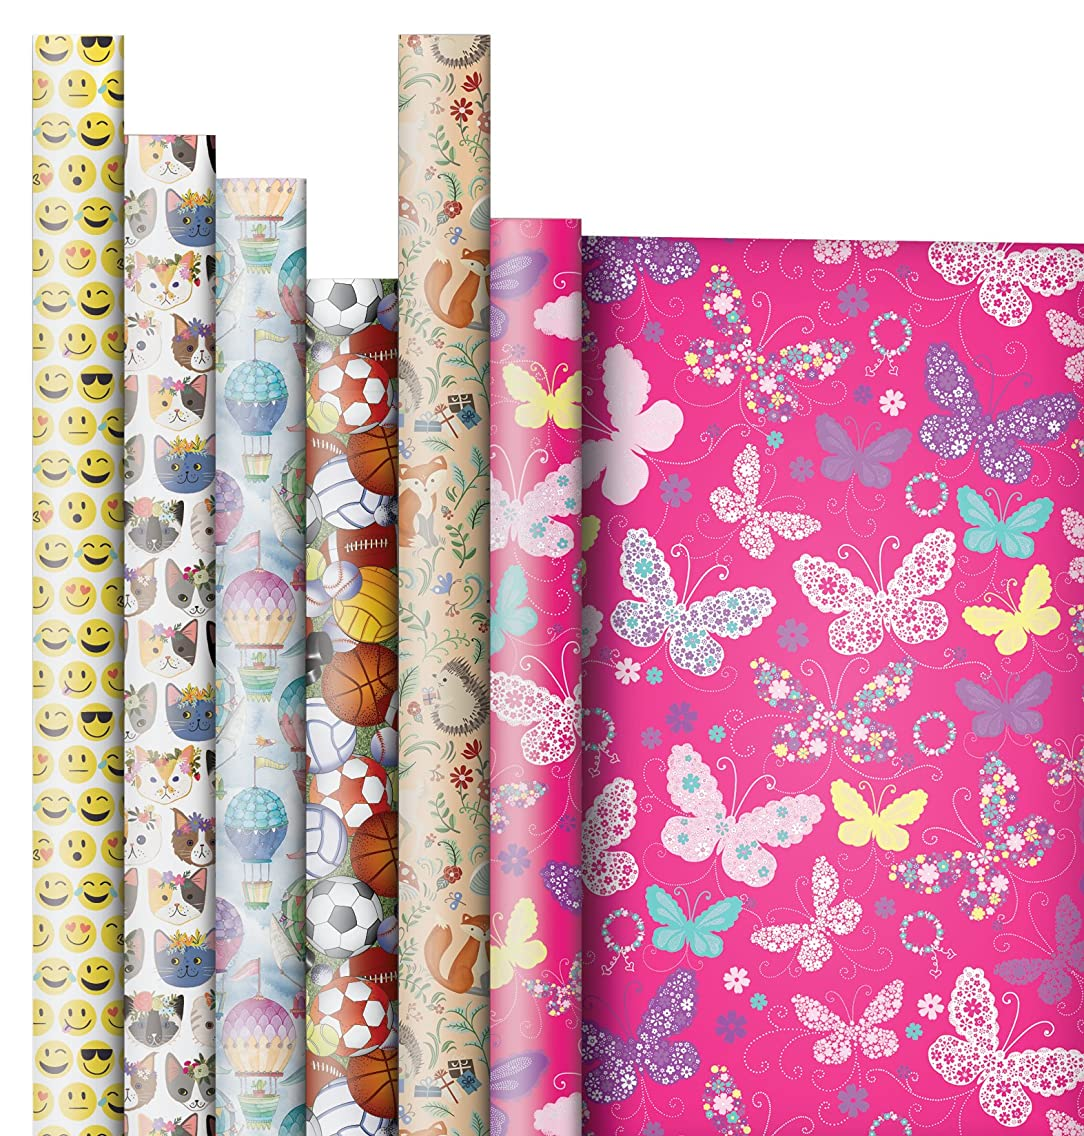 Jillson Roberts 6 Roll-Count All-Occasion Gift Wrap Available in 14 Different Assortments, Hooray for Little Girls